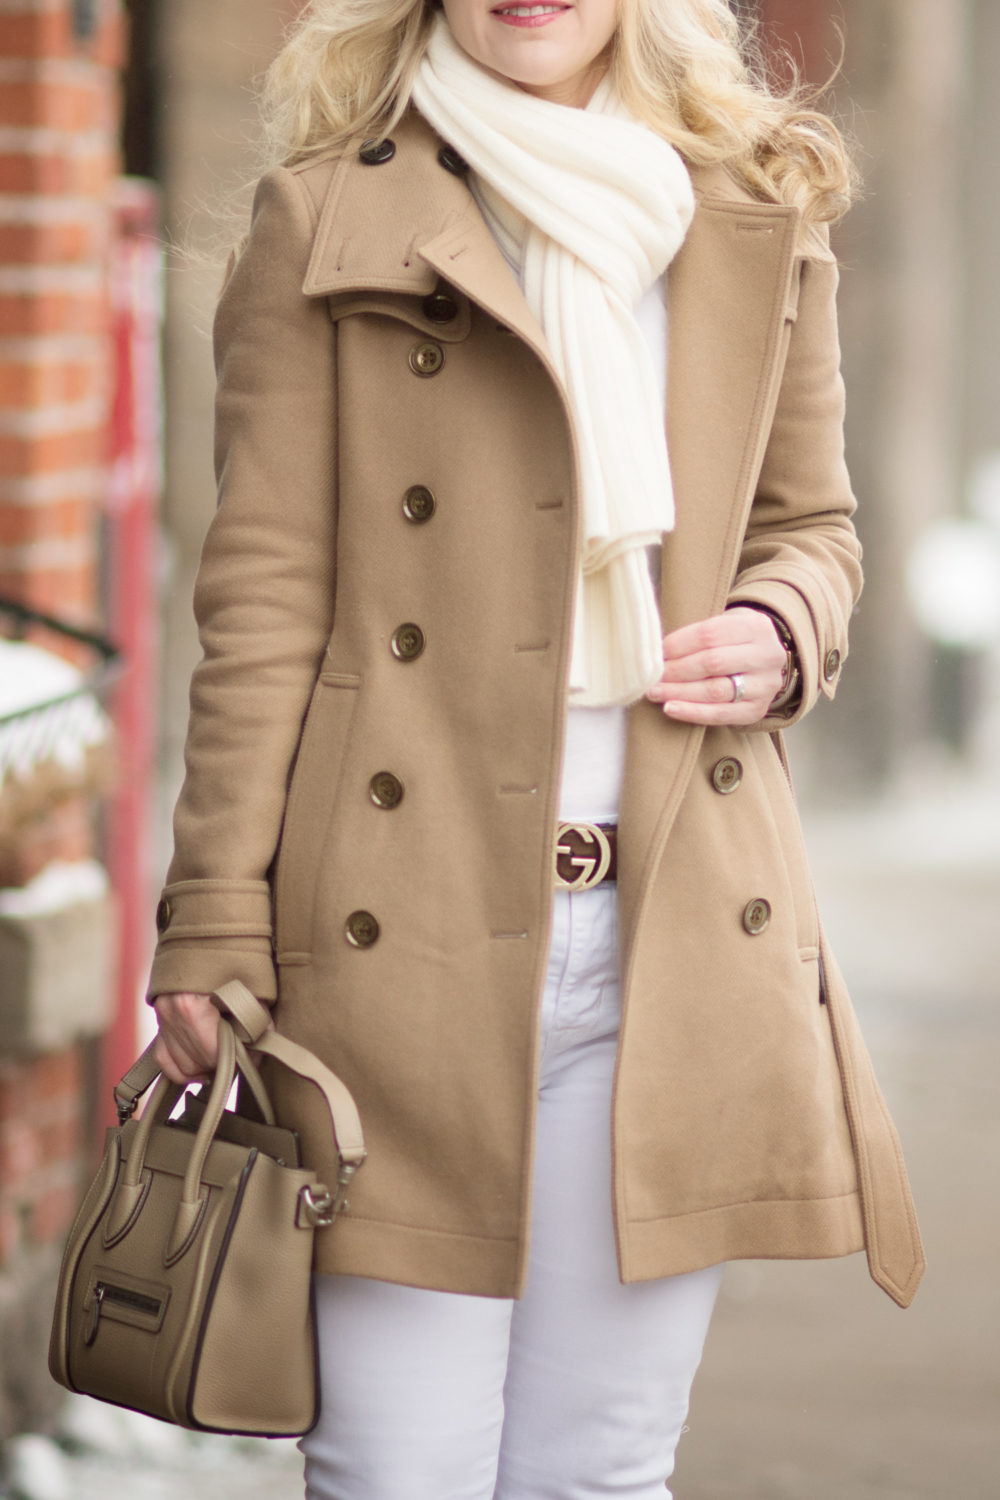 Petite Fashion and Style Blog | Fashion for Petite Women | Burberry Wool Blend Coat | C by Bloomingdales Ribbed Cashmere Scarf | Christian Louboutin So Kate Heels | Celine Nano Tote | Why you Need a Camel Coat